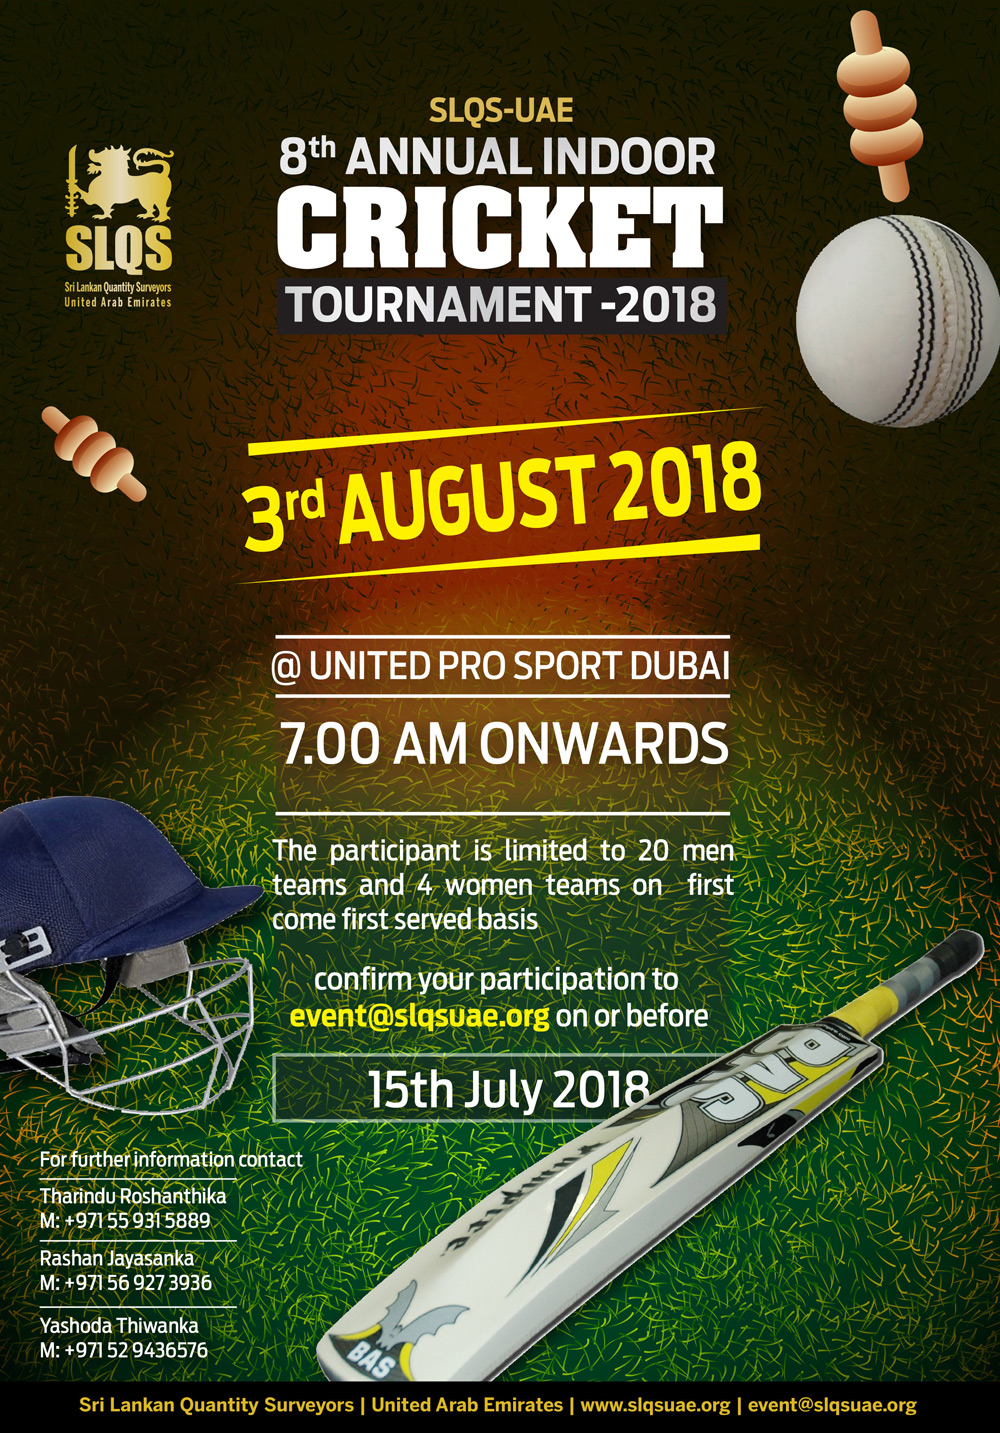 8th Annual Indoor Cricket Tournament 2018